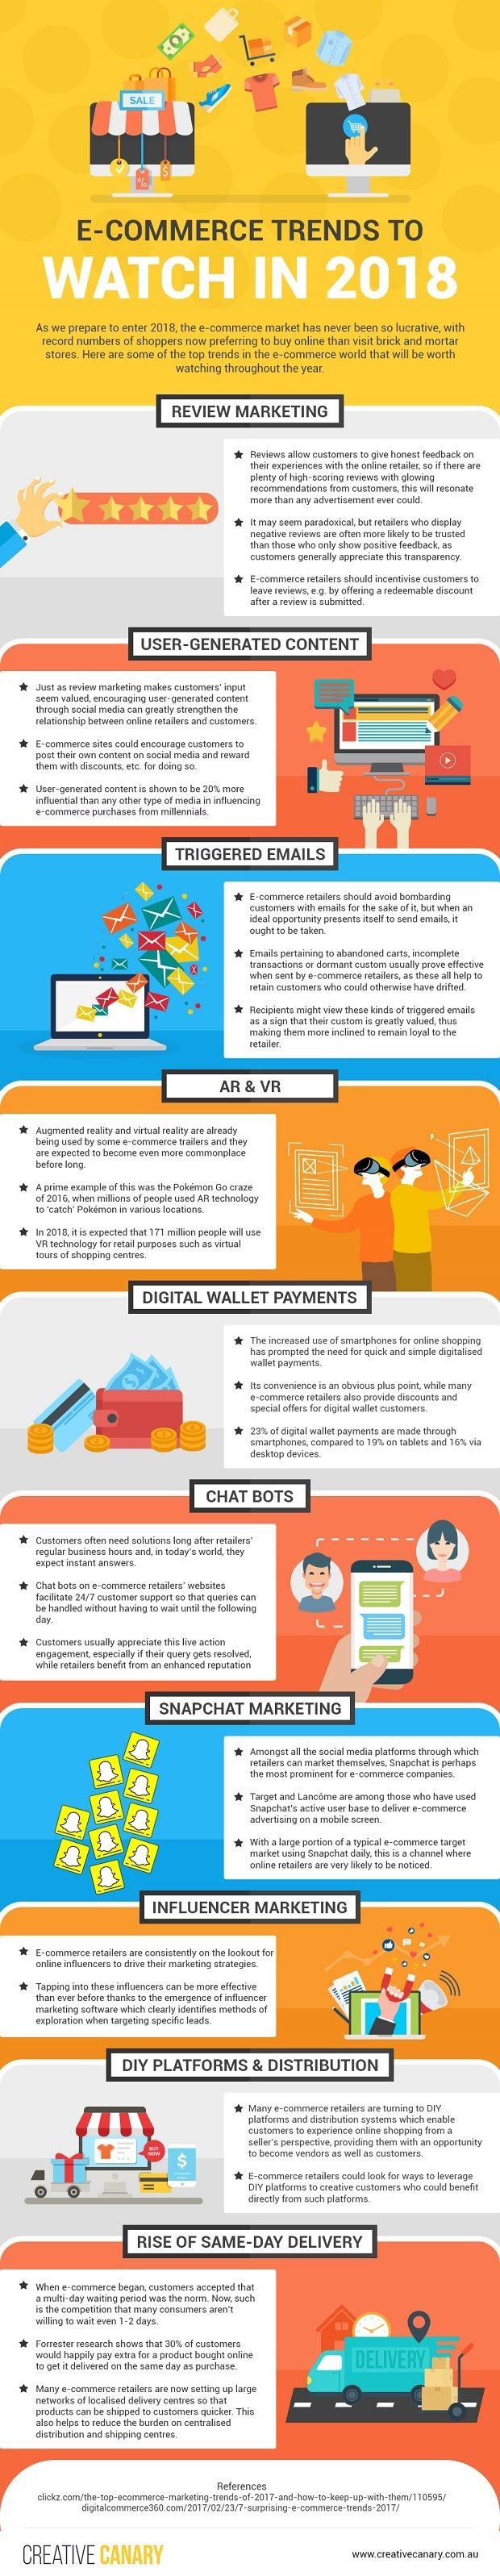 E-Commerce Trends to Watch in 2018 - #infographic